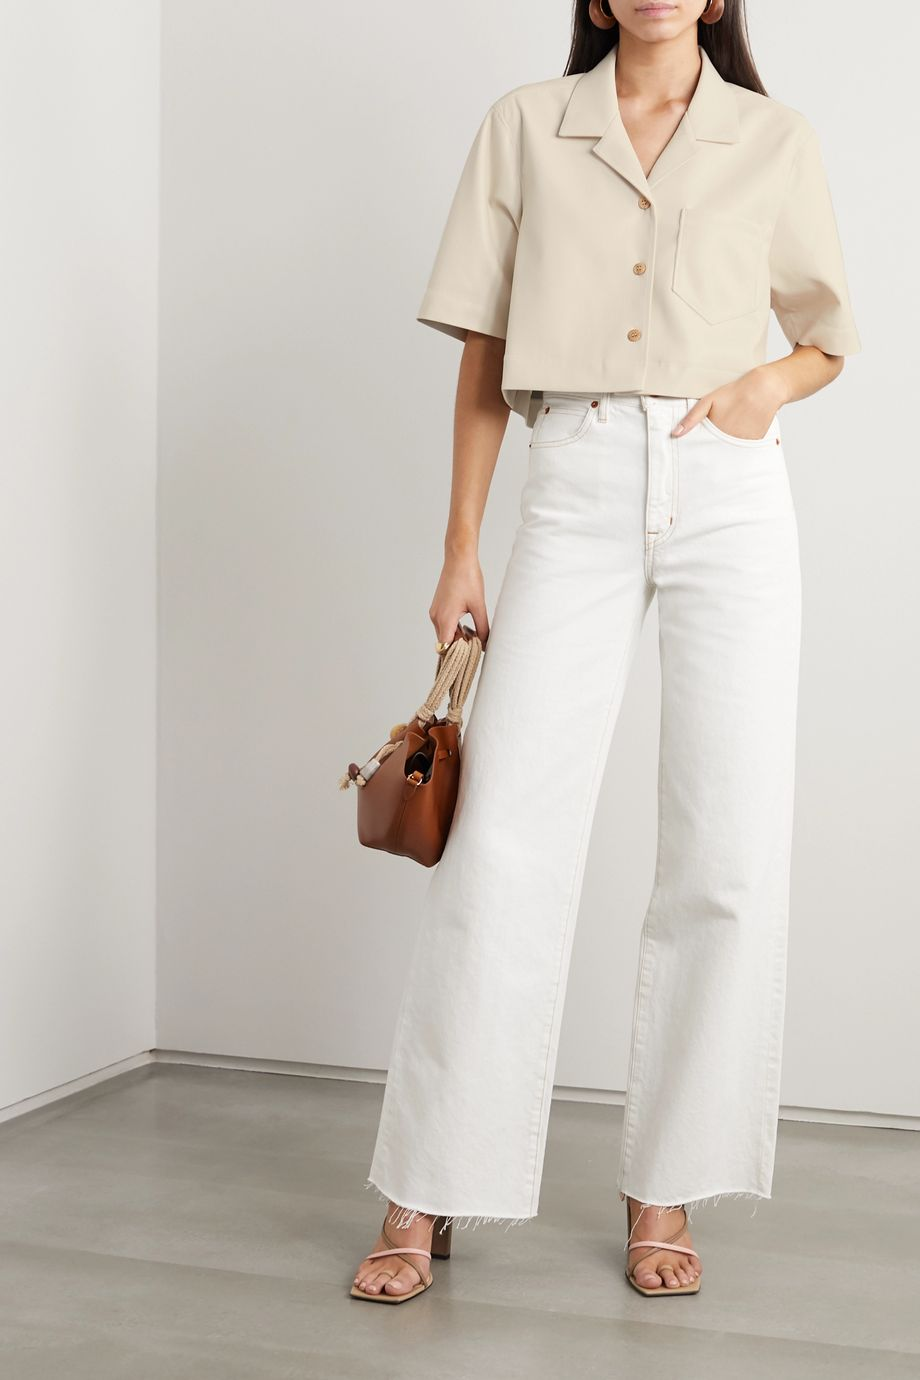 Nanushka Rhett cropped vegan leather shirt